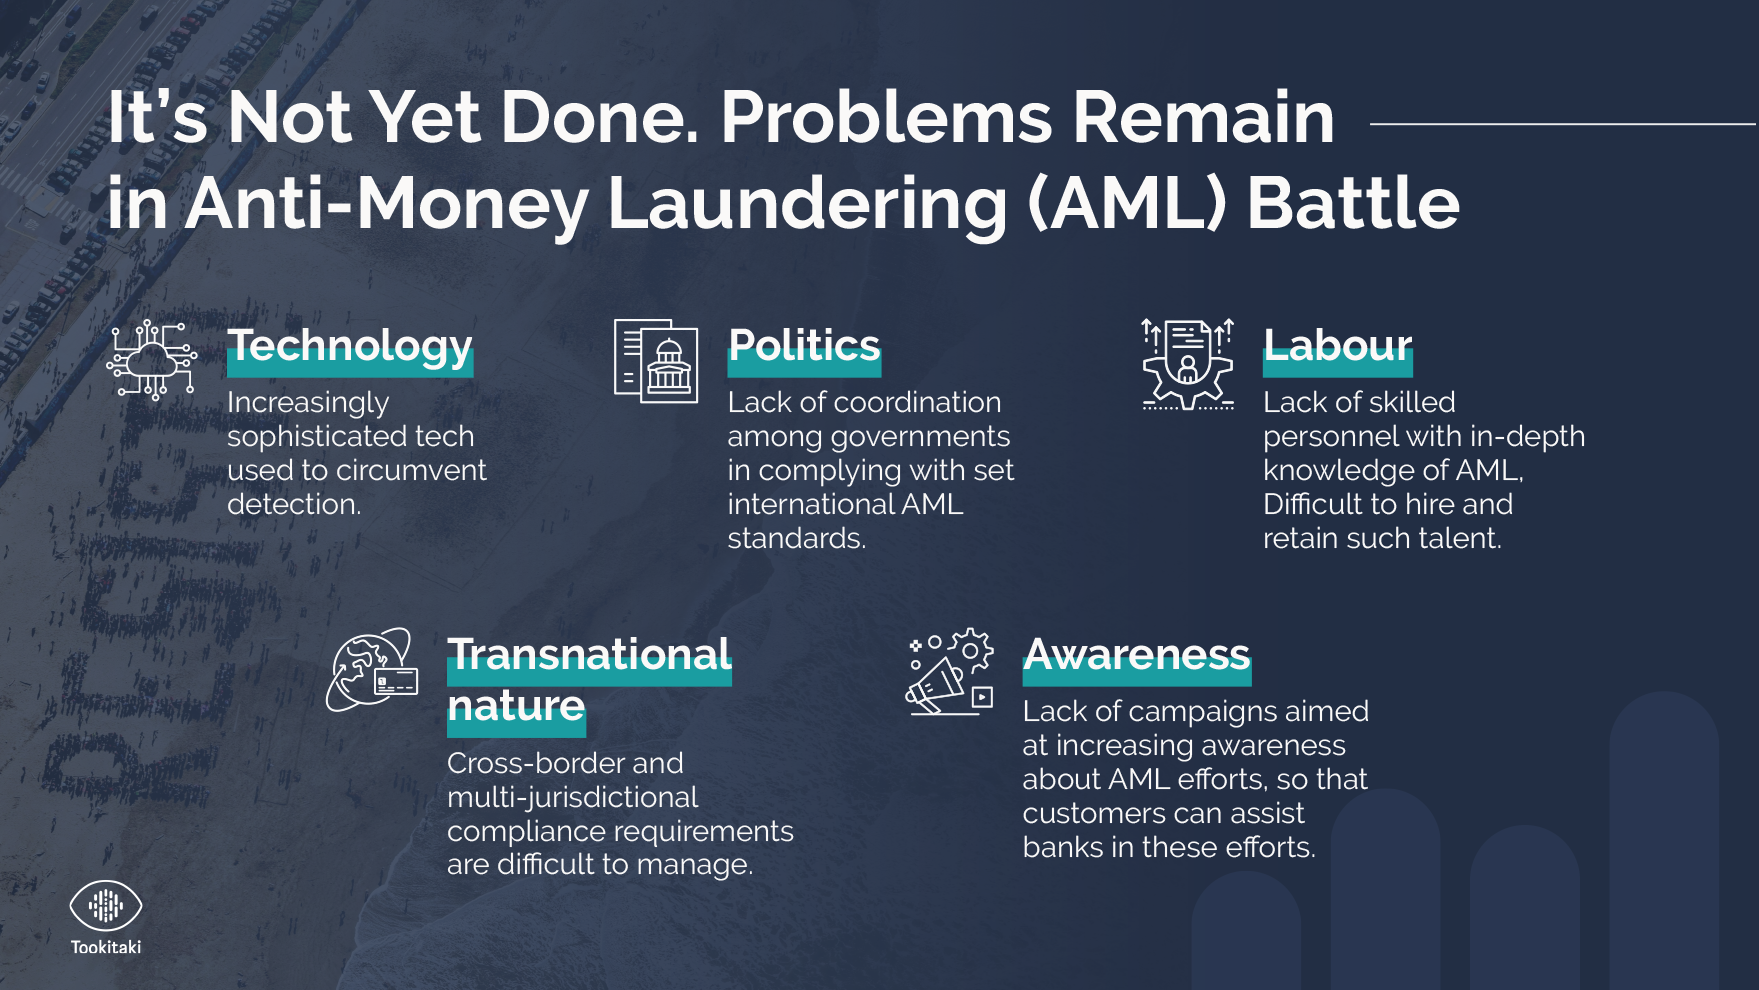 It's Not Yet Done. Problems Remain in Anti-Money Laundering (AML) Battle